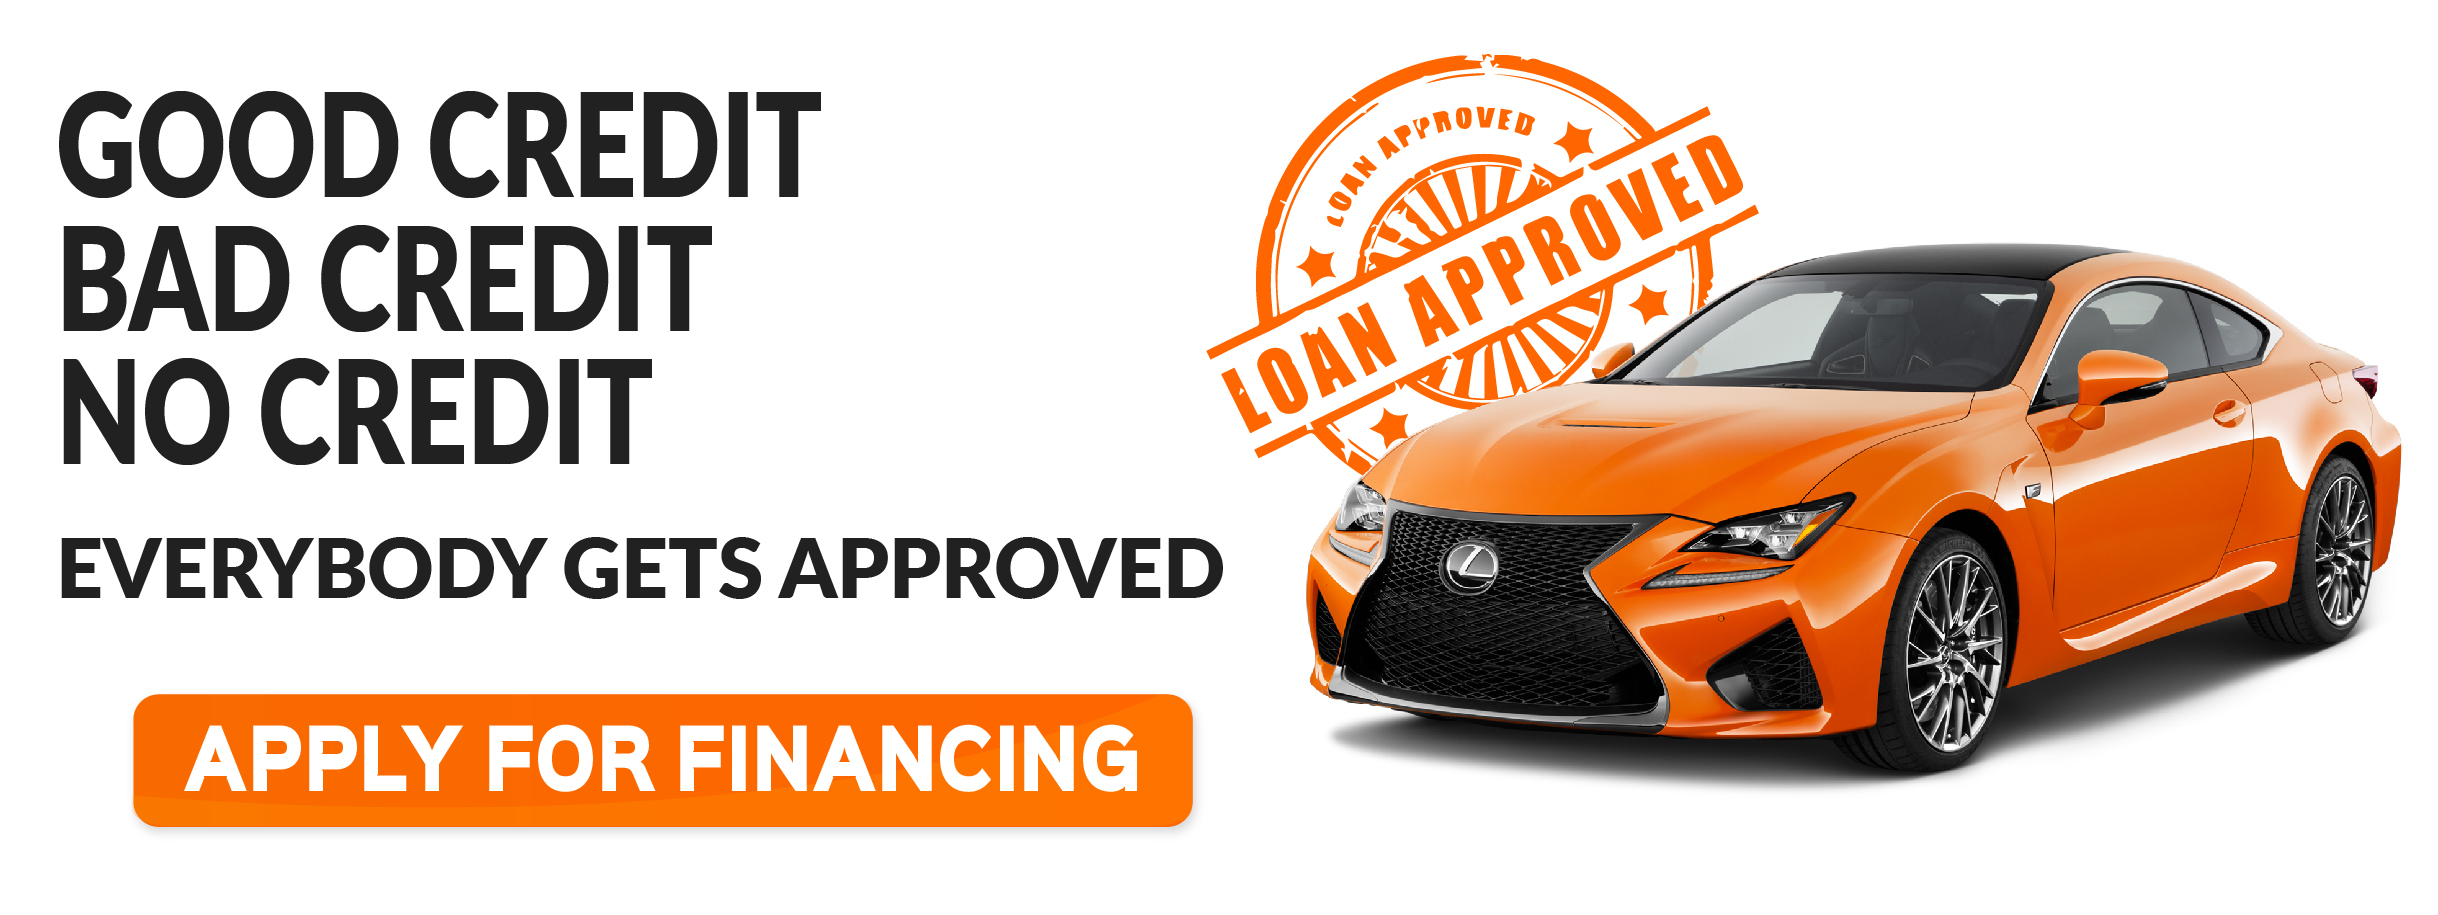 Good Credit, Bad Credit or No credit. Everybody gets approved. Apply for Financing